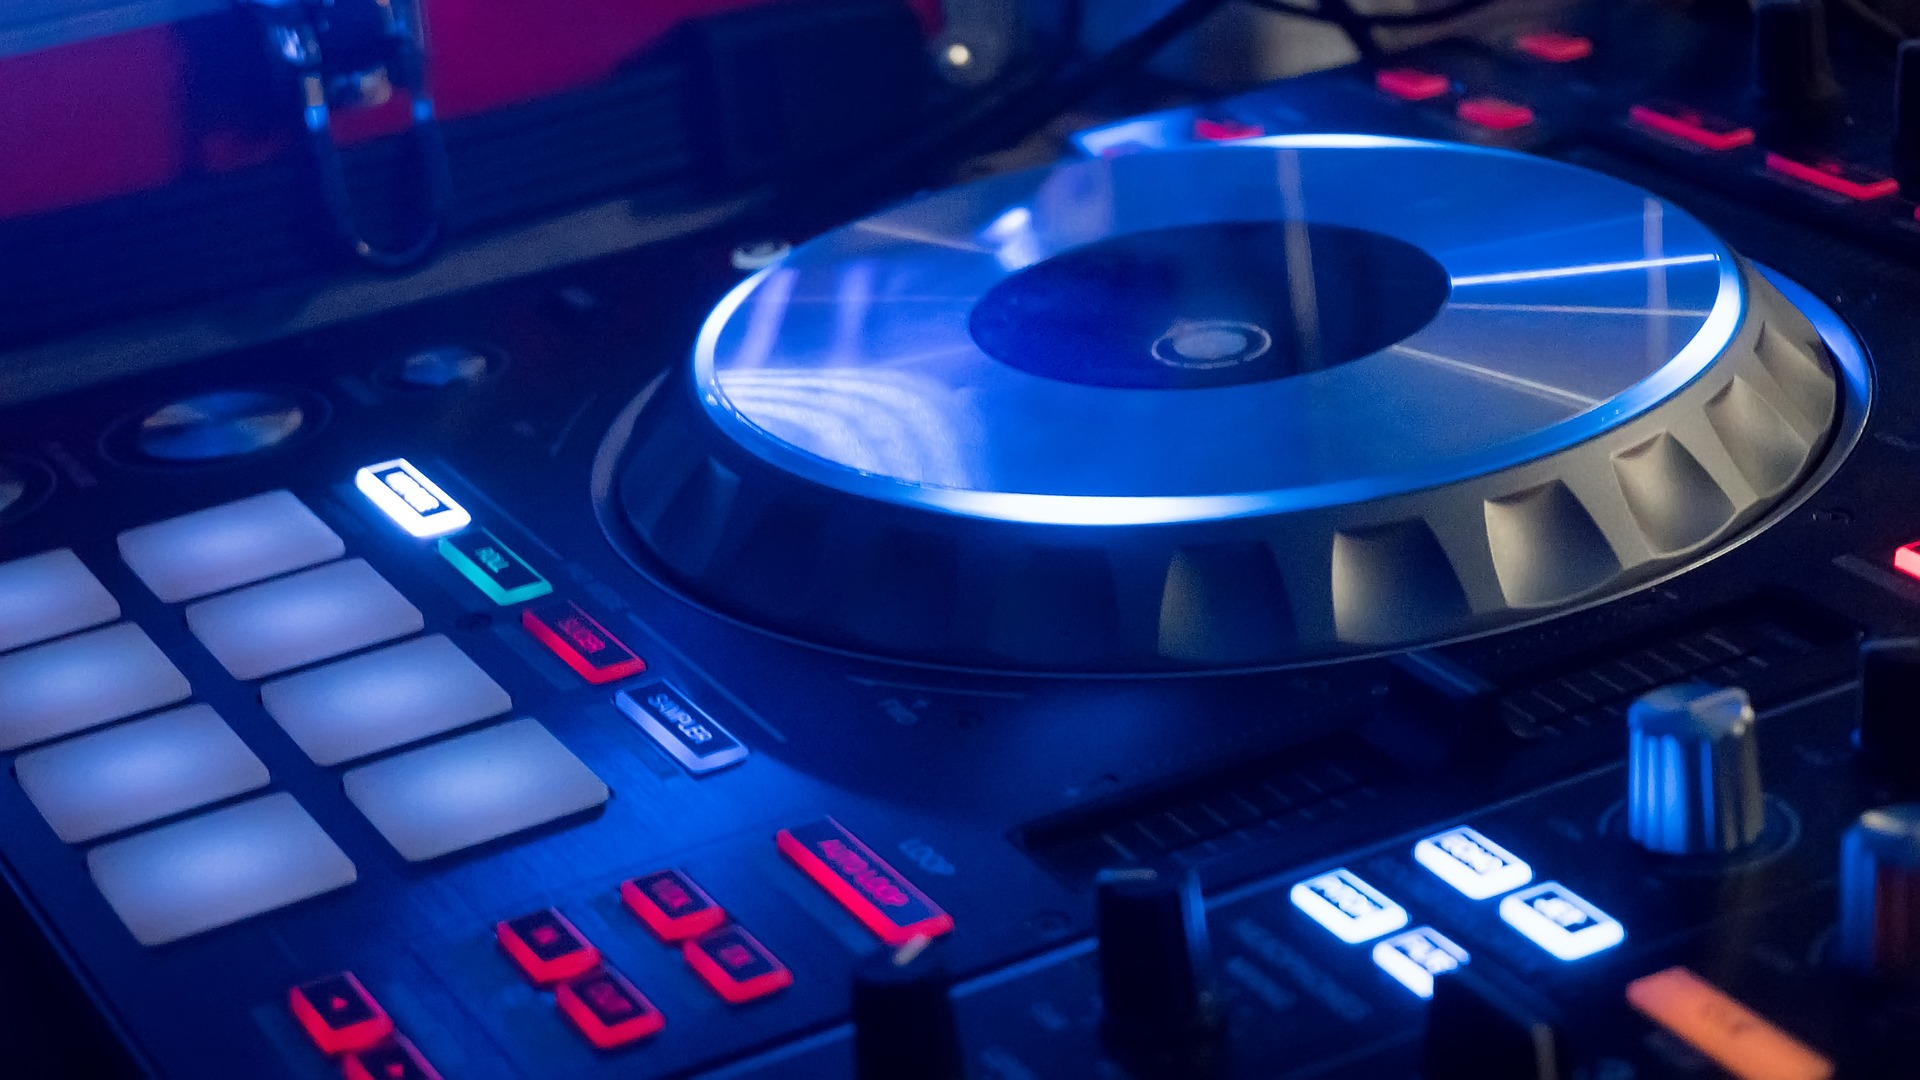 Dj, https://pixabay.com/it/photos/party-console-dj-musica-festa-2217208/, Foto di Alessandro Giordano da Pixabay, CC0